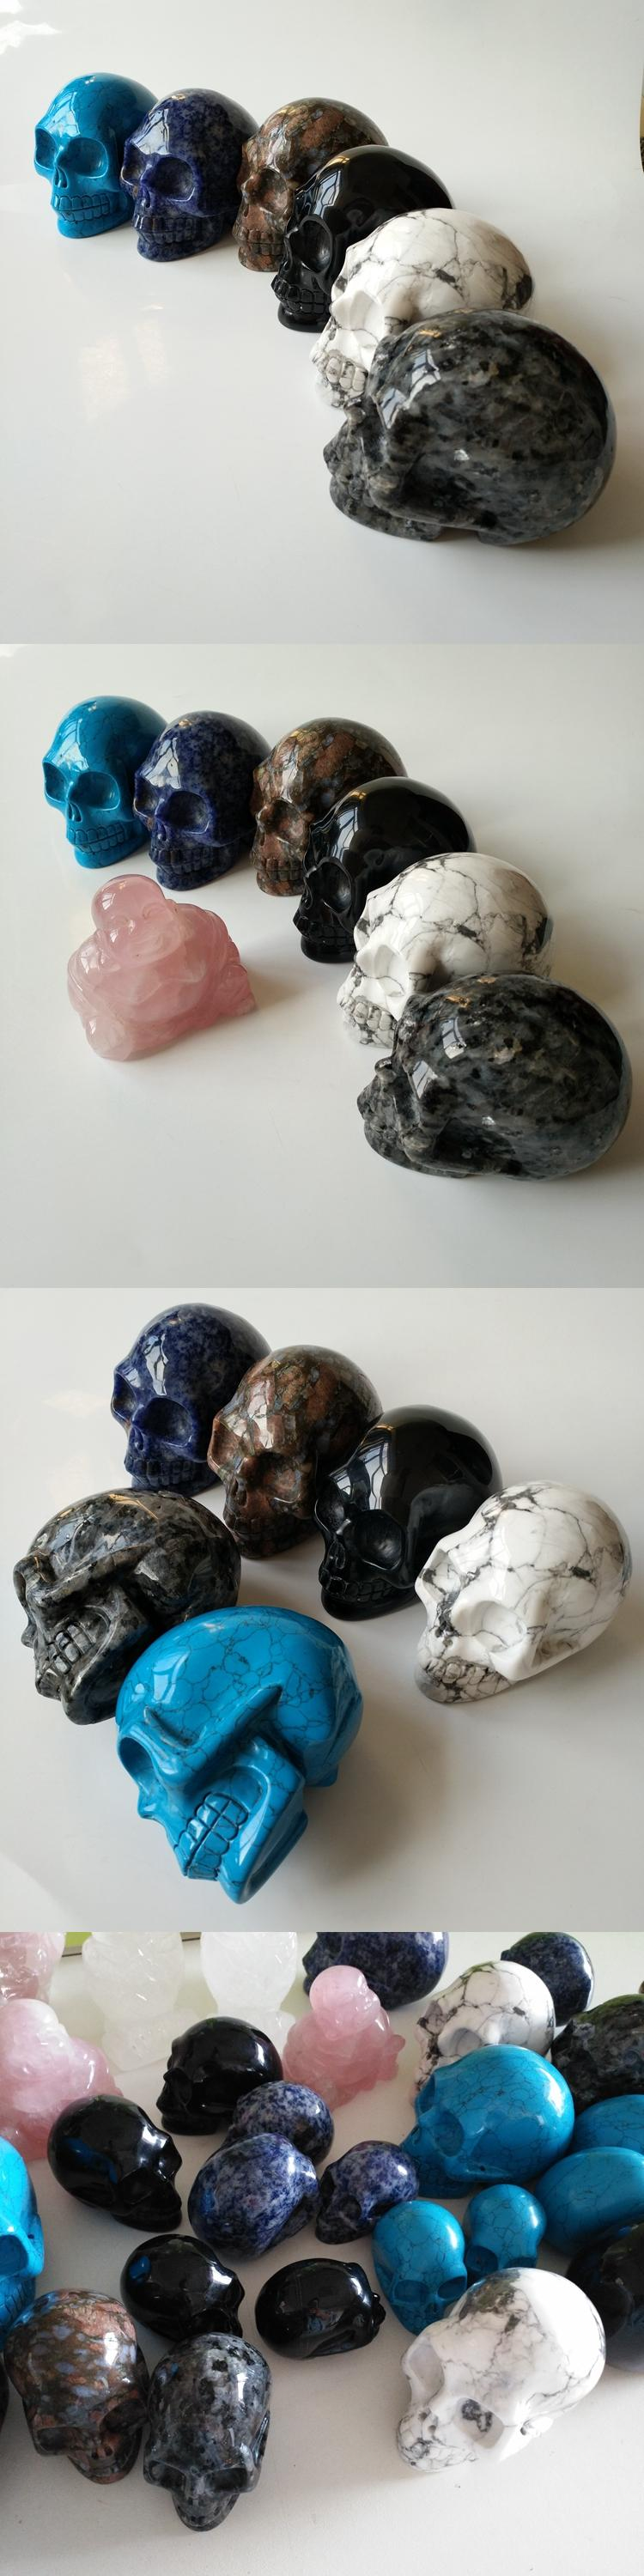 Home decoration mini labradorite crystal skulls black gemstone